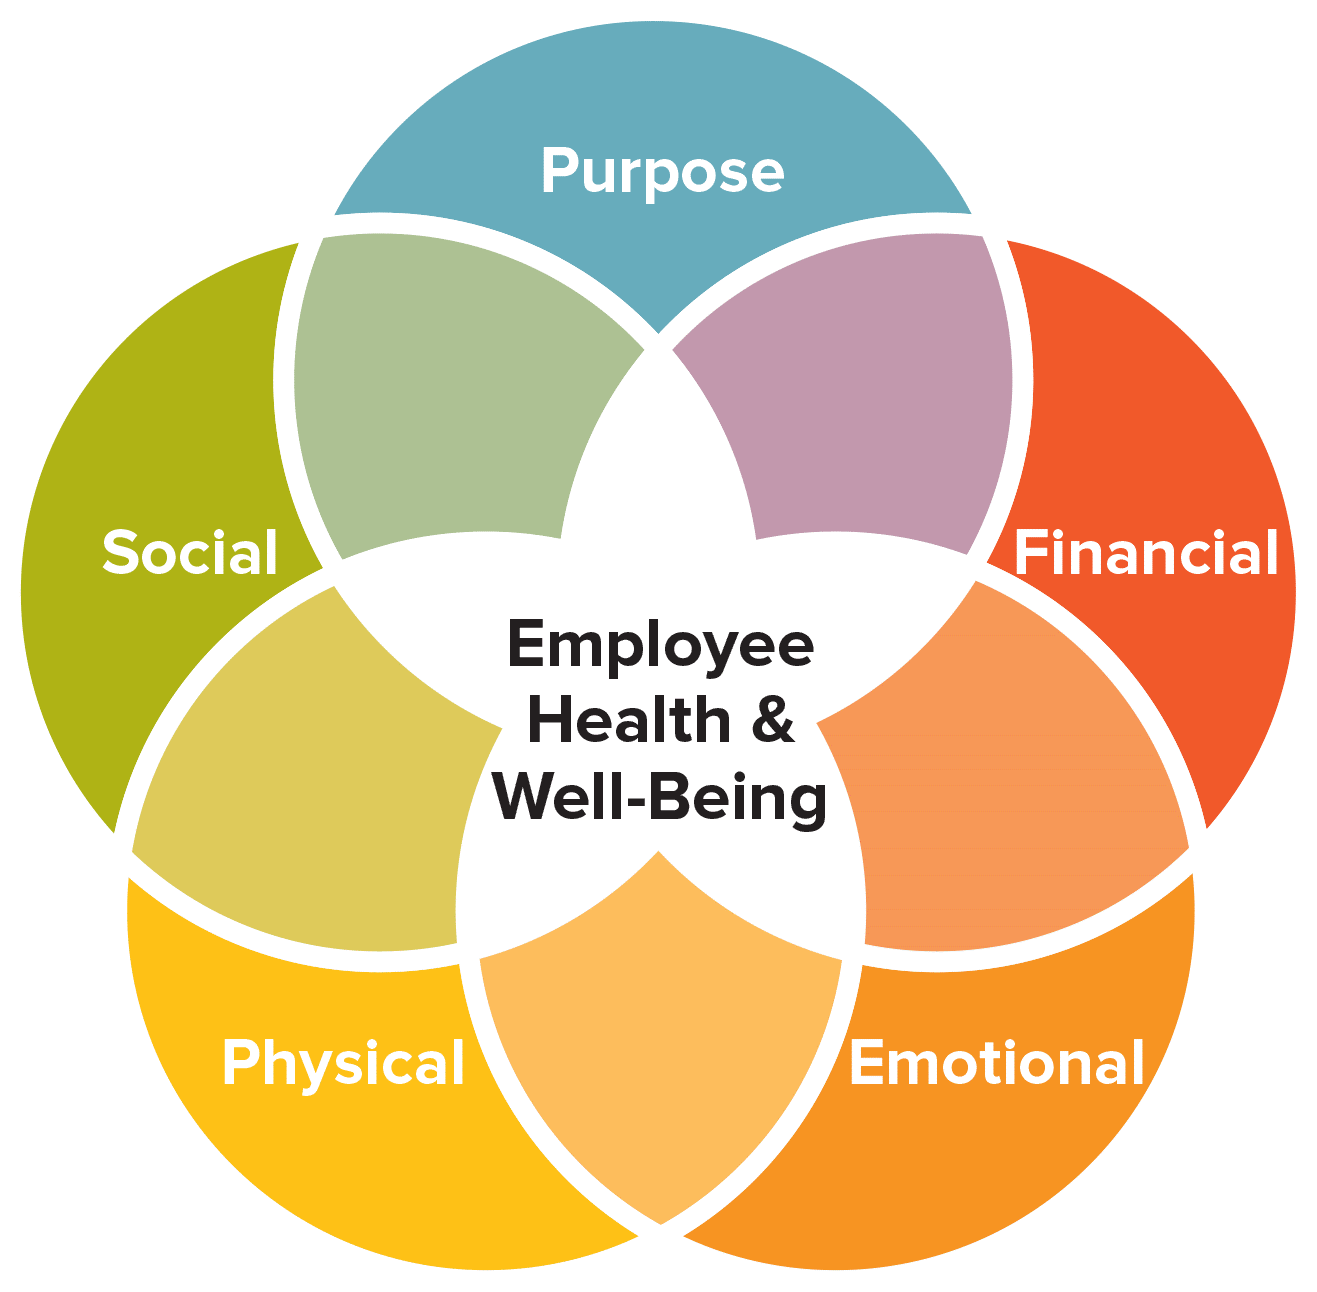 Employee health and well-being diagram